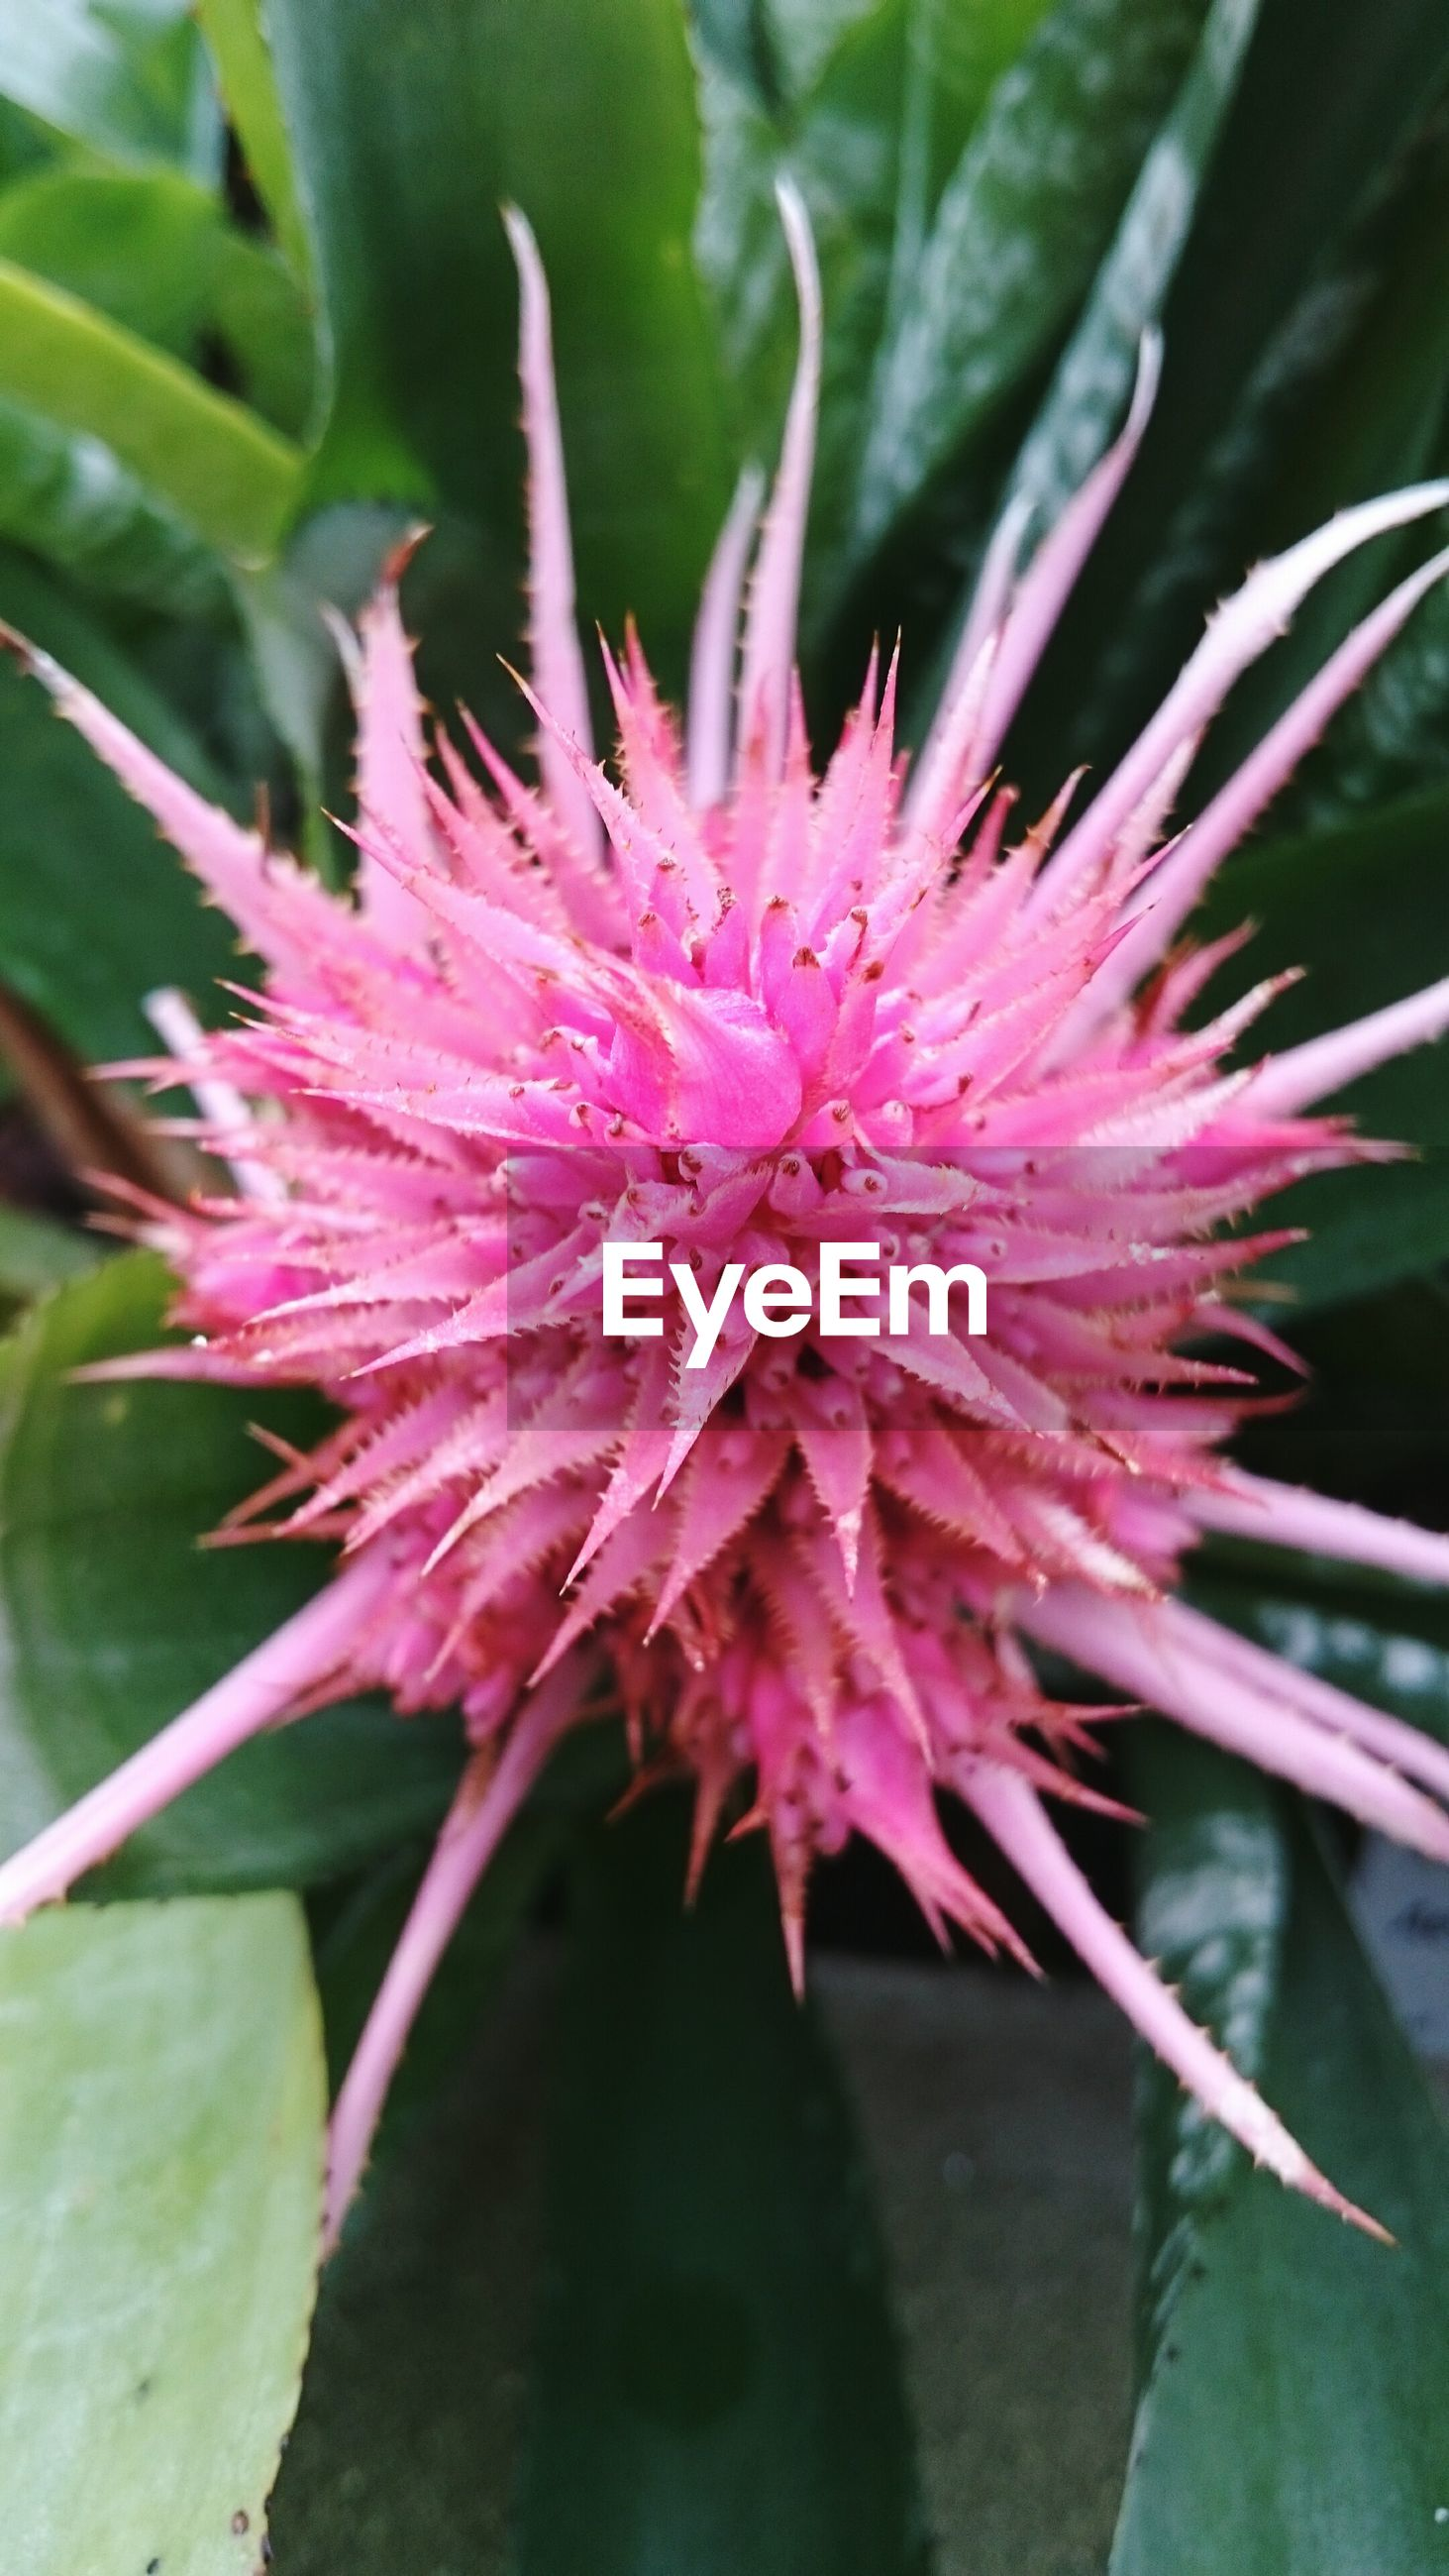 flower, freshness, petal, flower head, growth, fragility, close-up, beauty in nature, single flower, pink color, nature, plant, focus on foreground, blooming, leaf, pollen, stamen, in bloom, blossom, outdoors